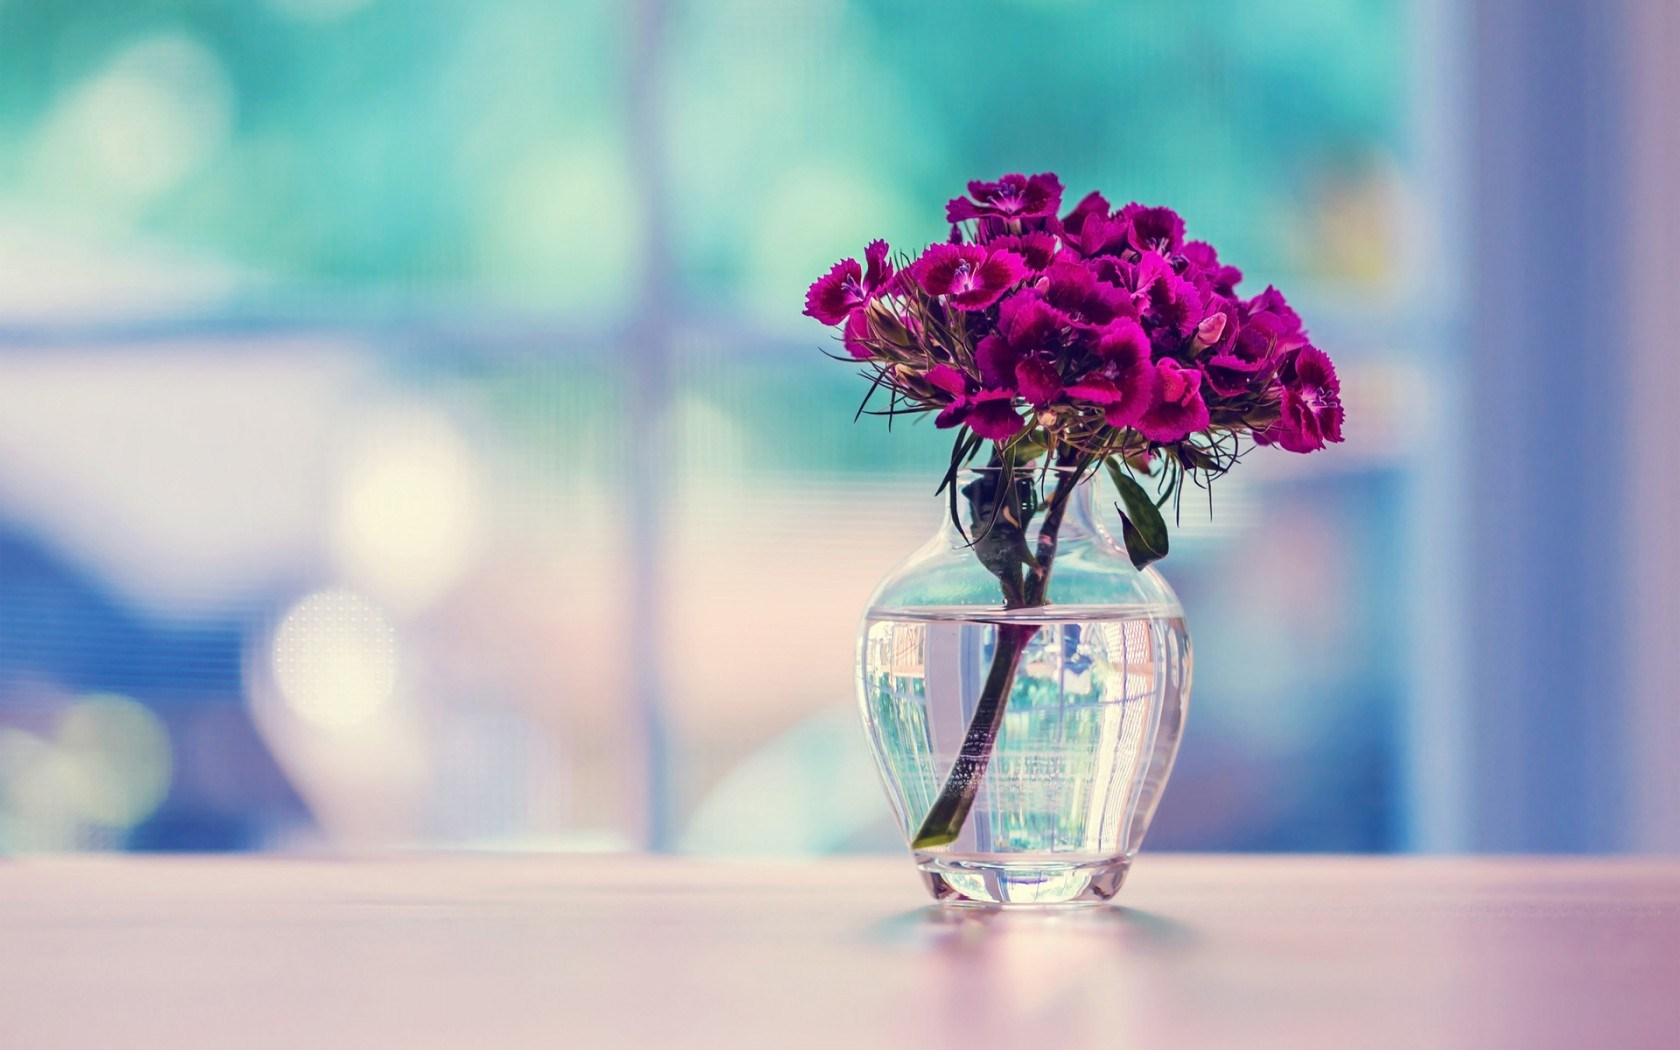 Glass Vase Beautiful Flowers HD Wallpaper